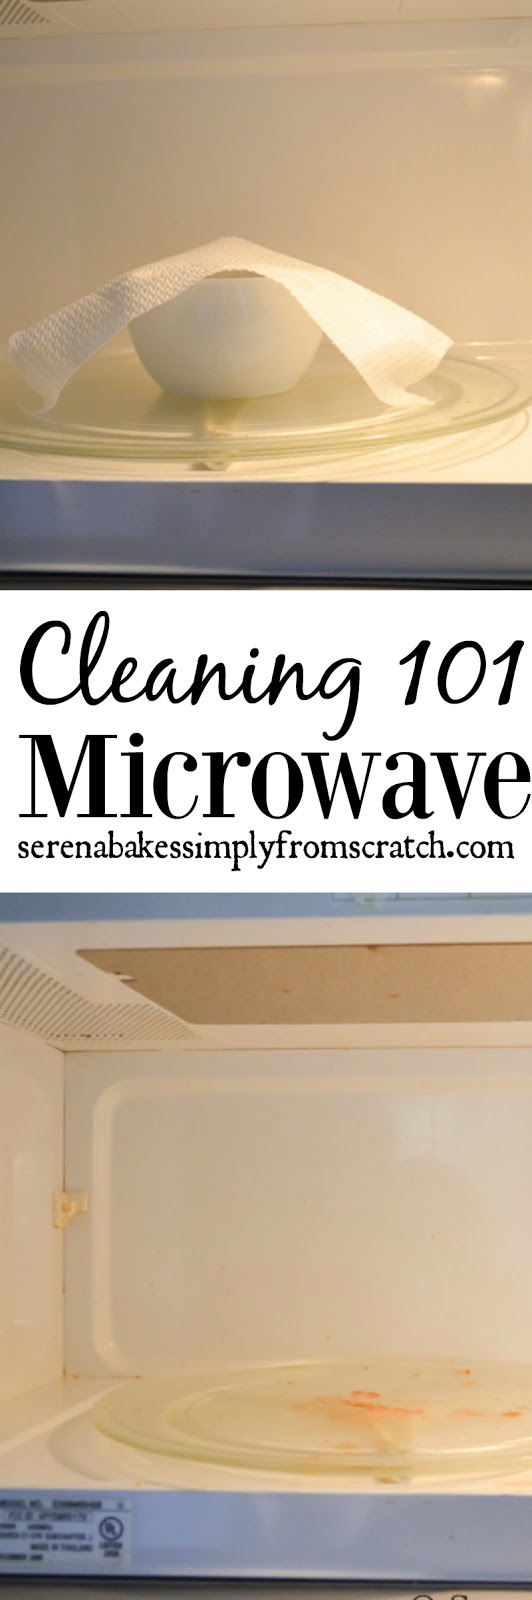 How to clean a grimy Microwave with water and essential oils. So easy to do and makes the house smell great! serenabakessimplyfromscratch.com